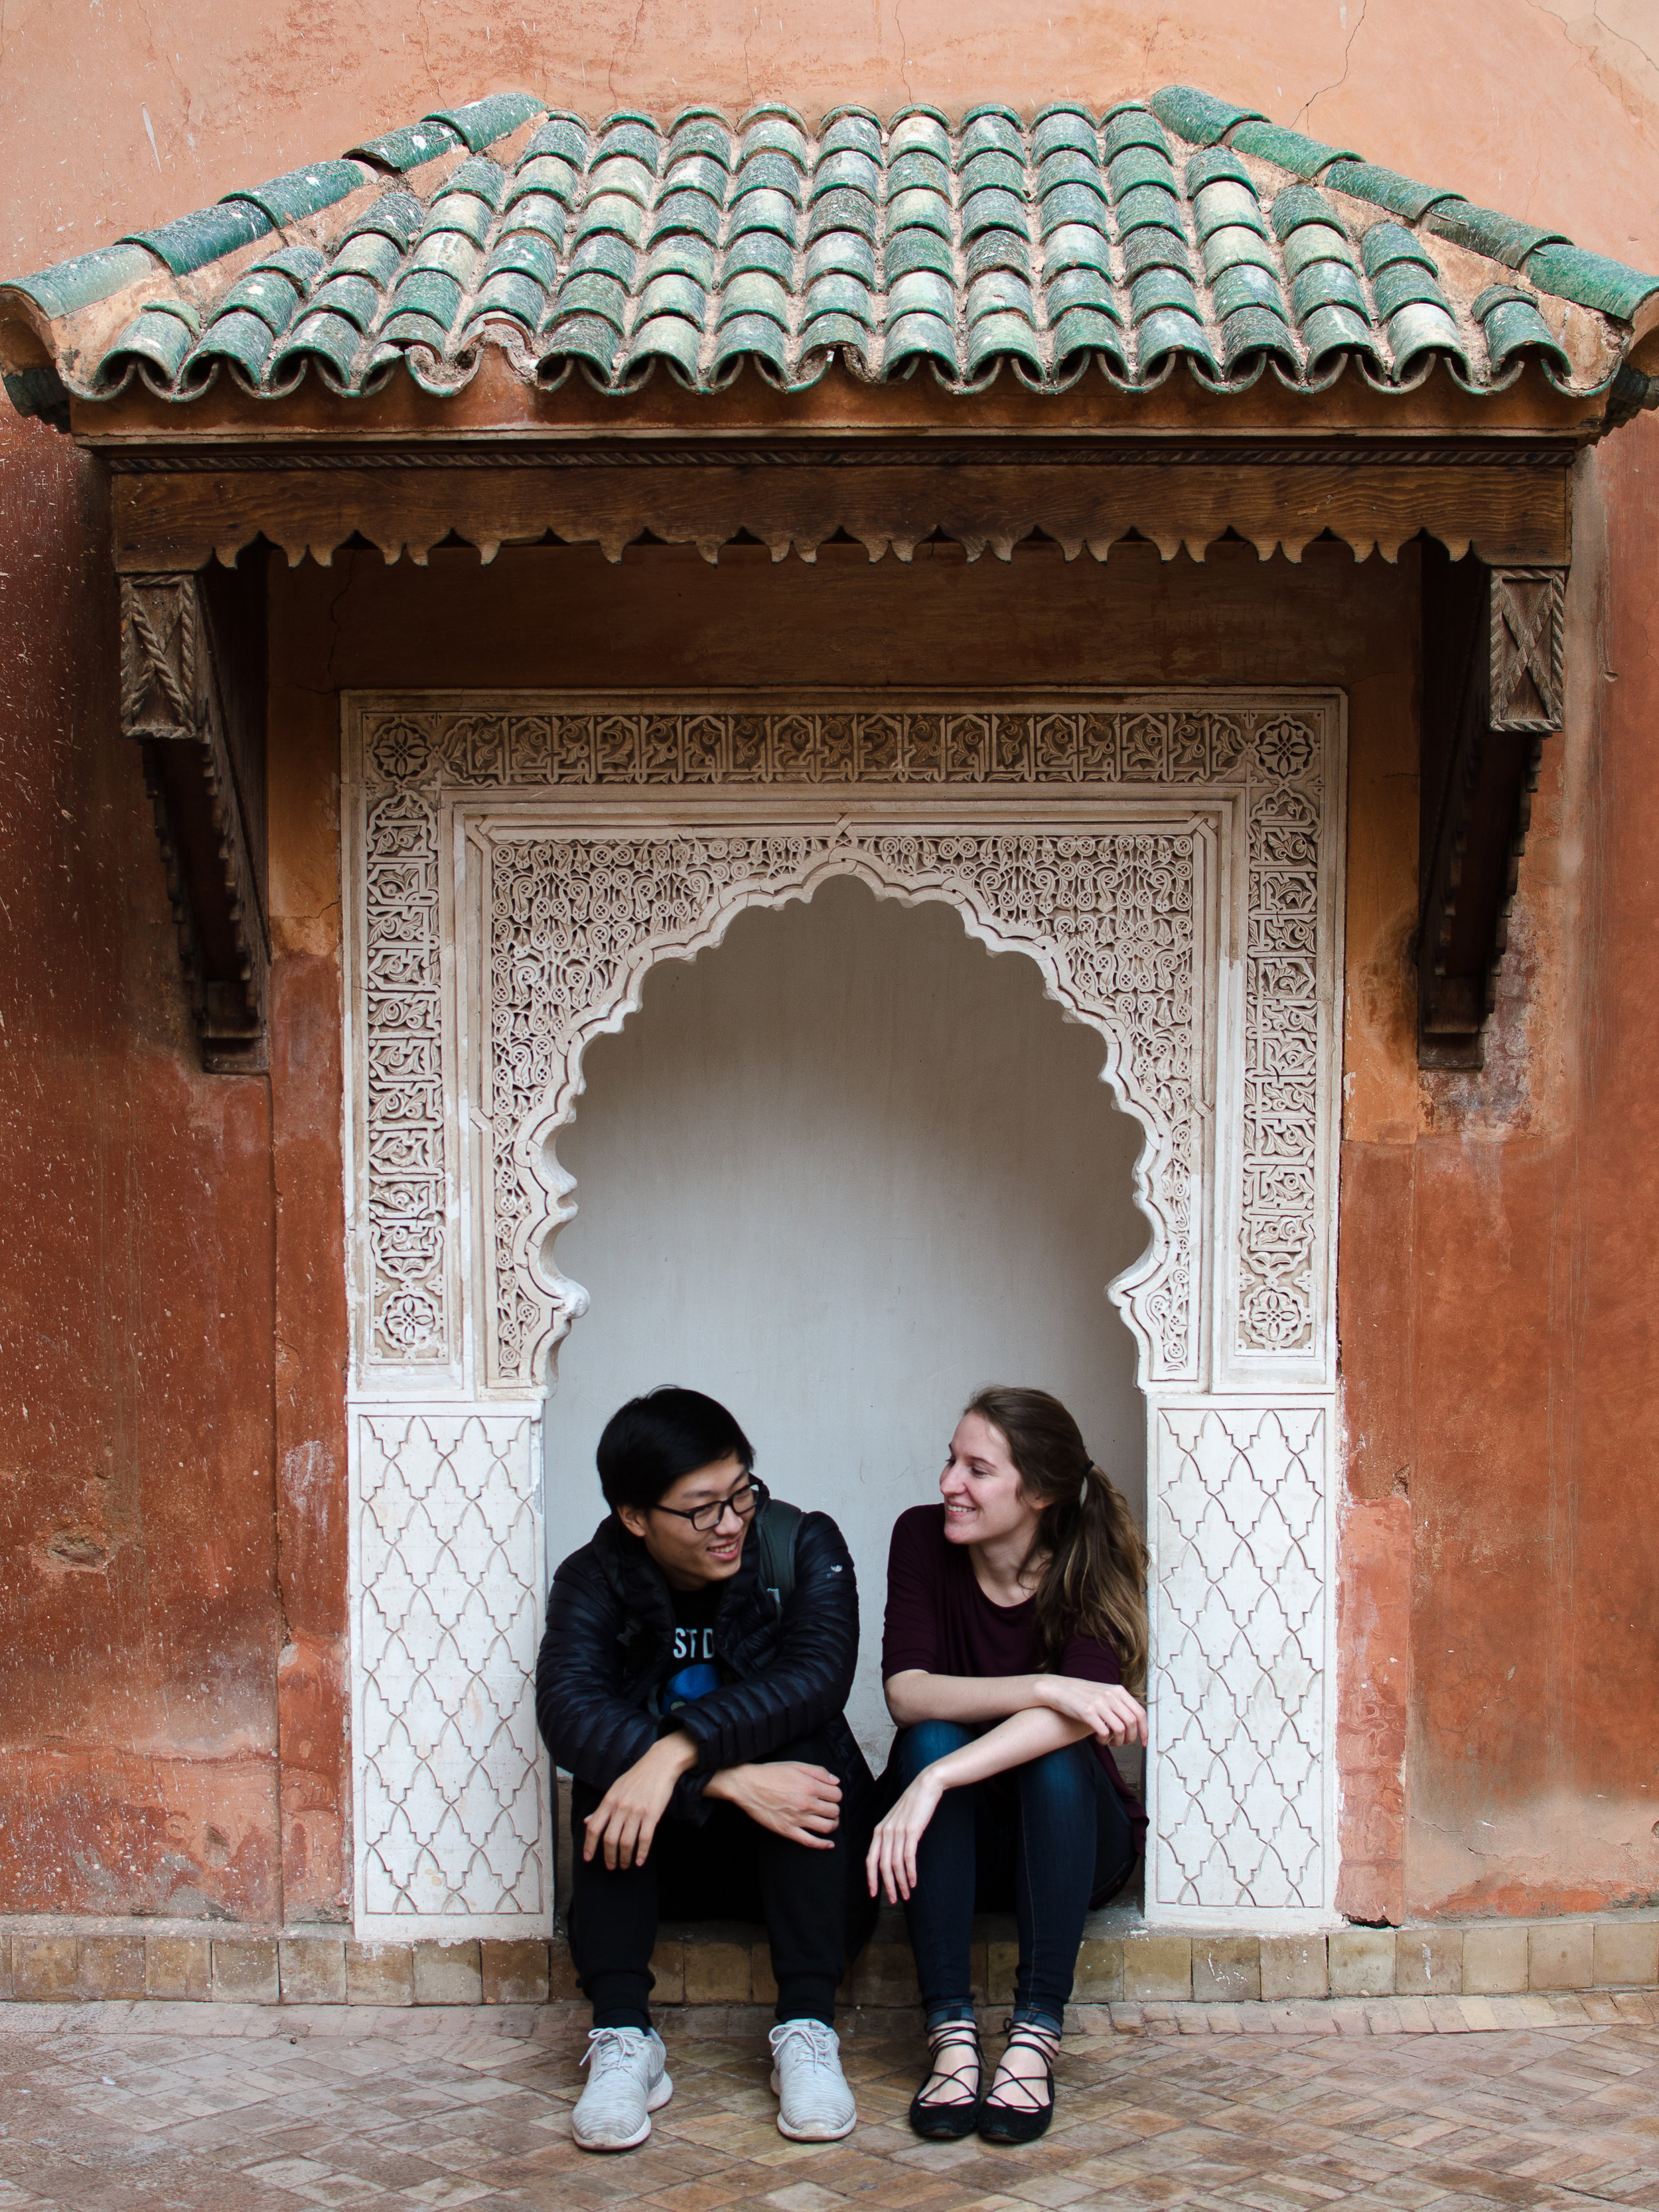 Chilling at the Saadian Tombs in Marrakech